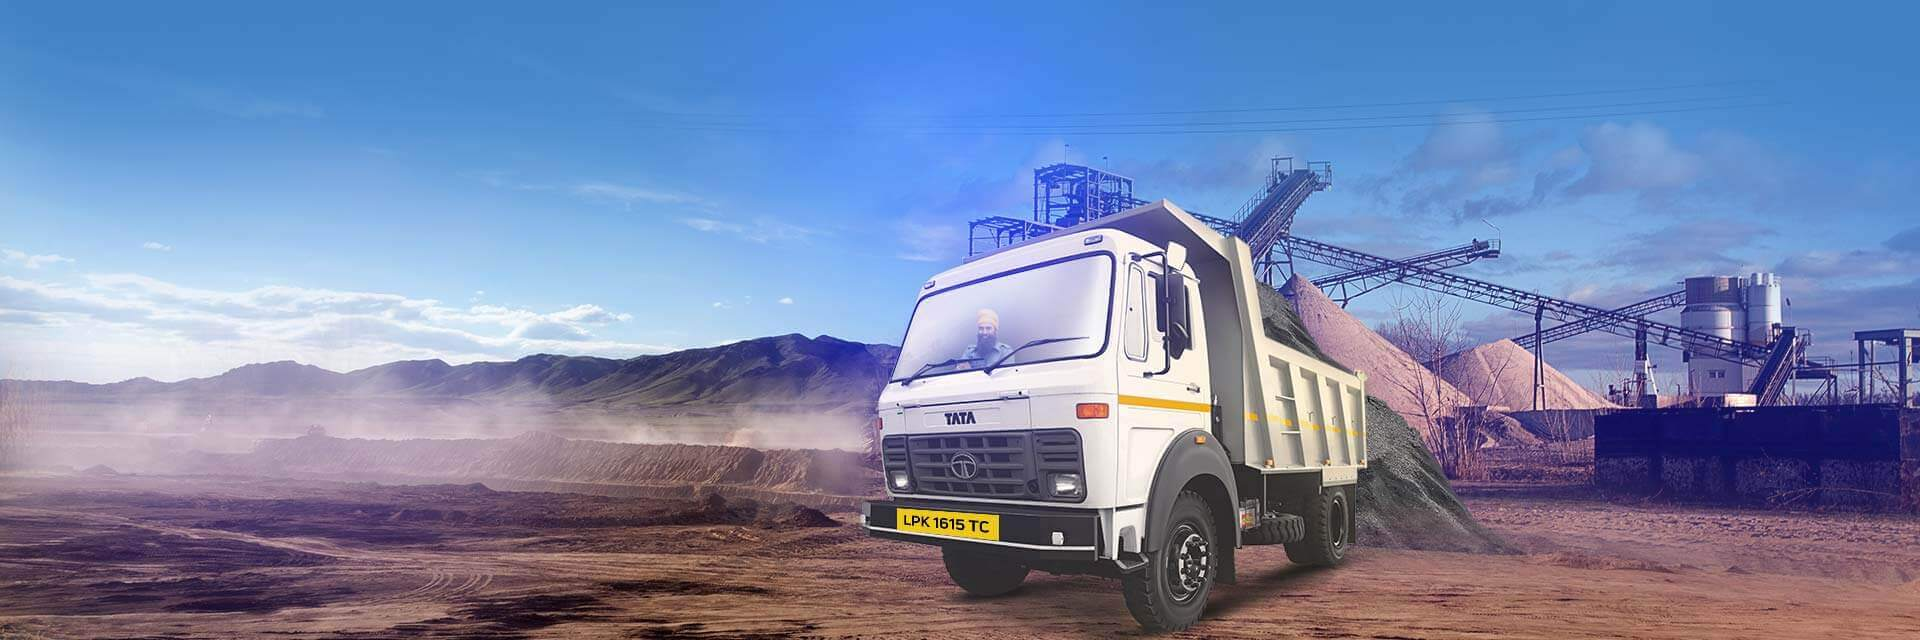 Tata LPK 1615 TC Trucks LH Side